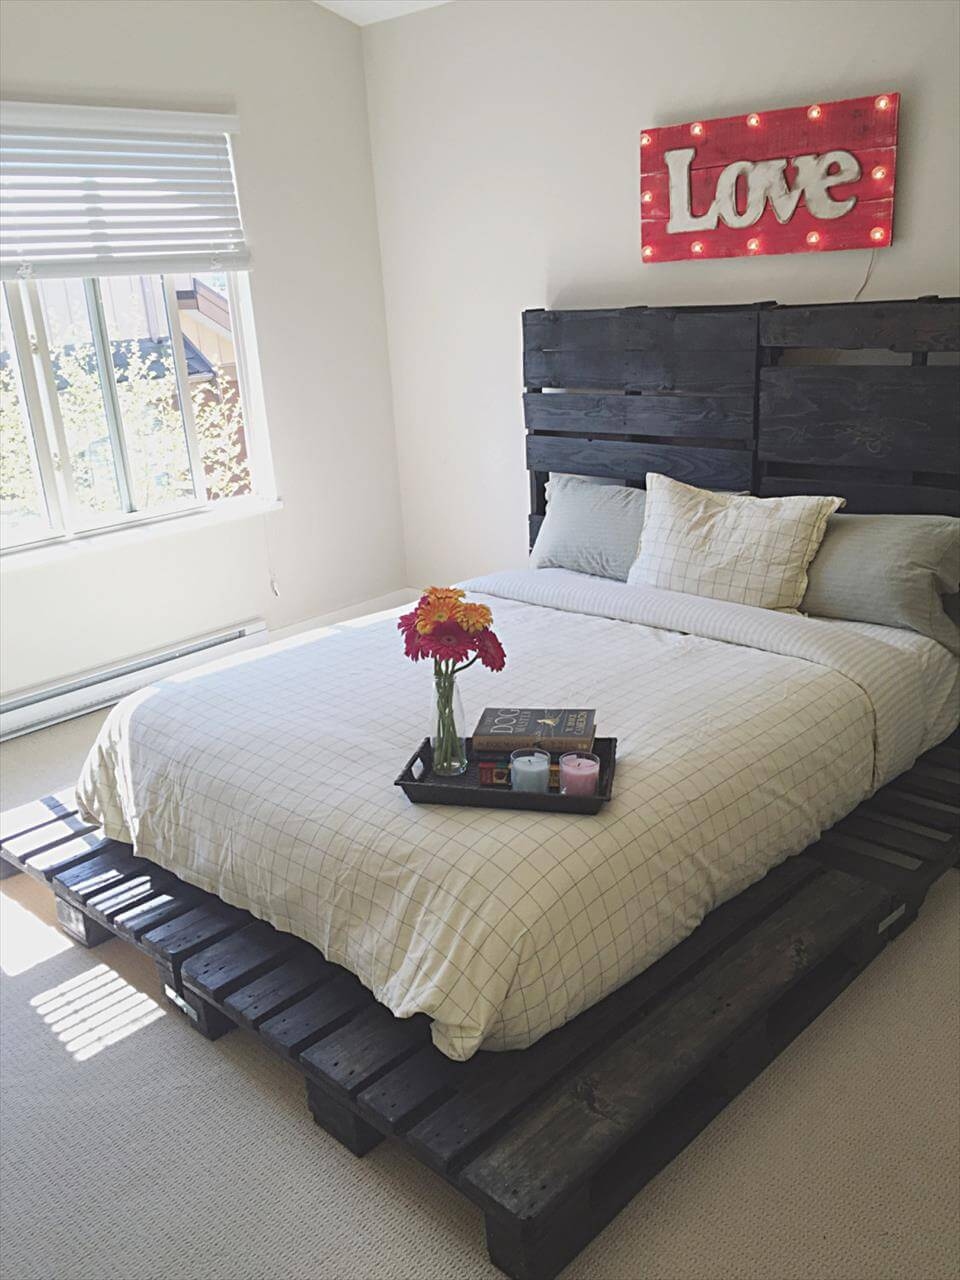 Wooden Pallet Bed out of only Pallets - Pallets Pro